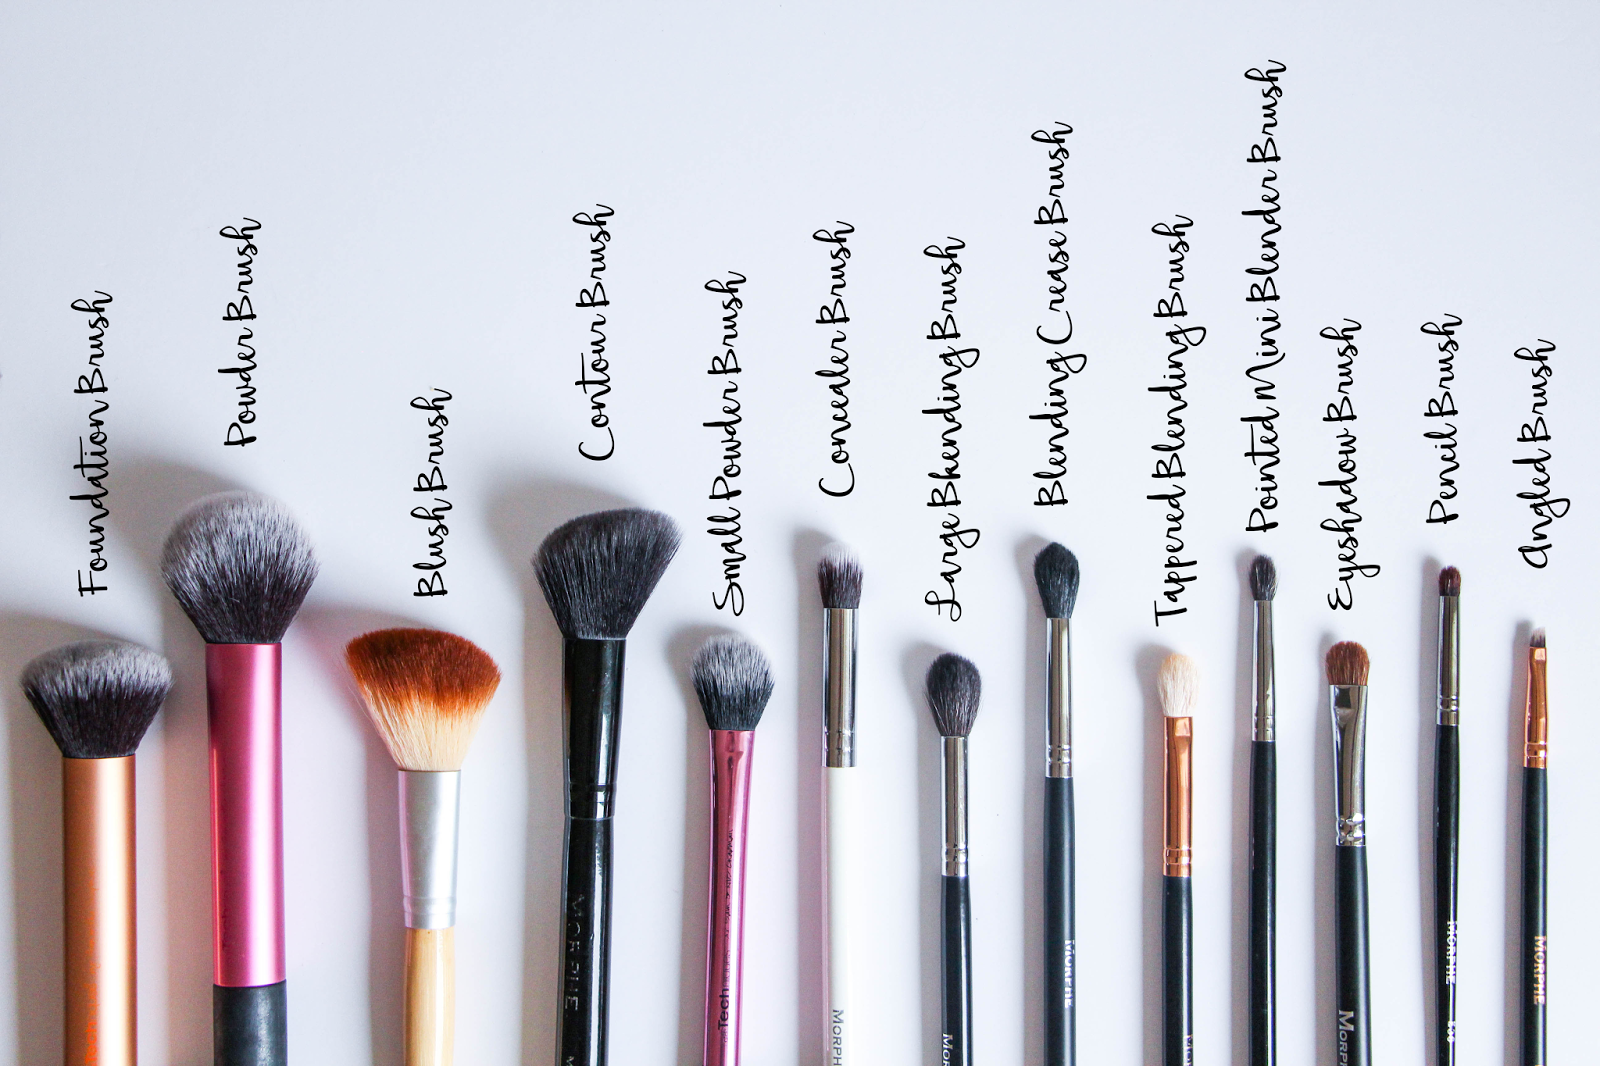 The 14 Types Of Makeup Brushes You Need For Flawless